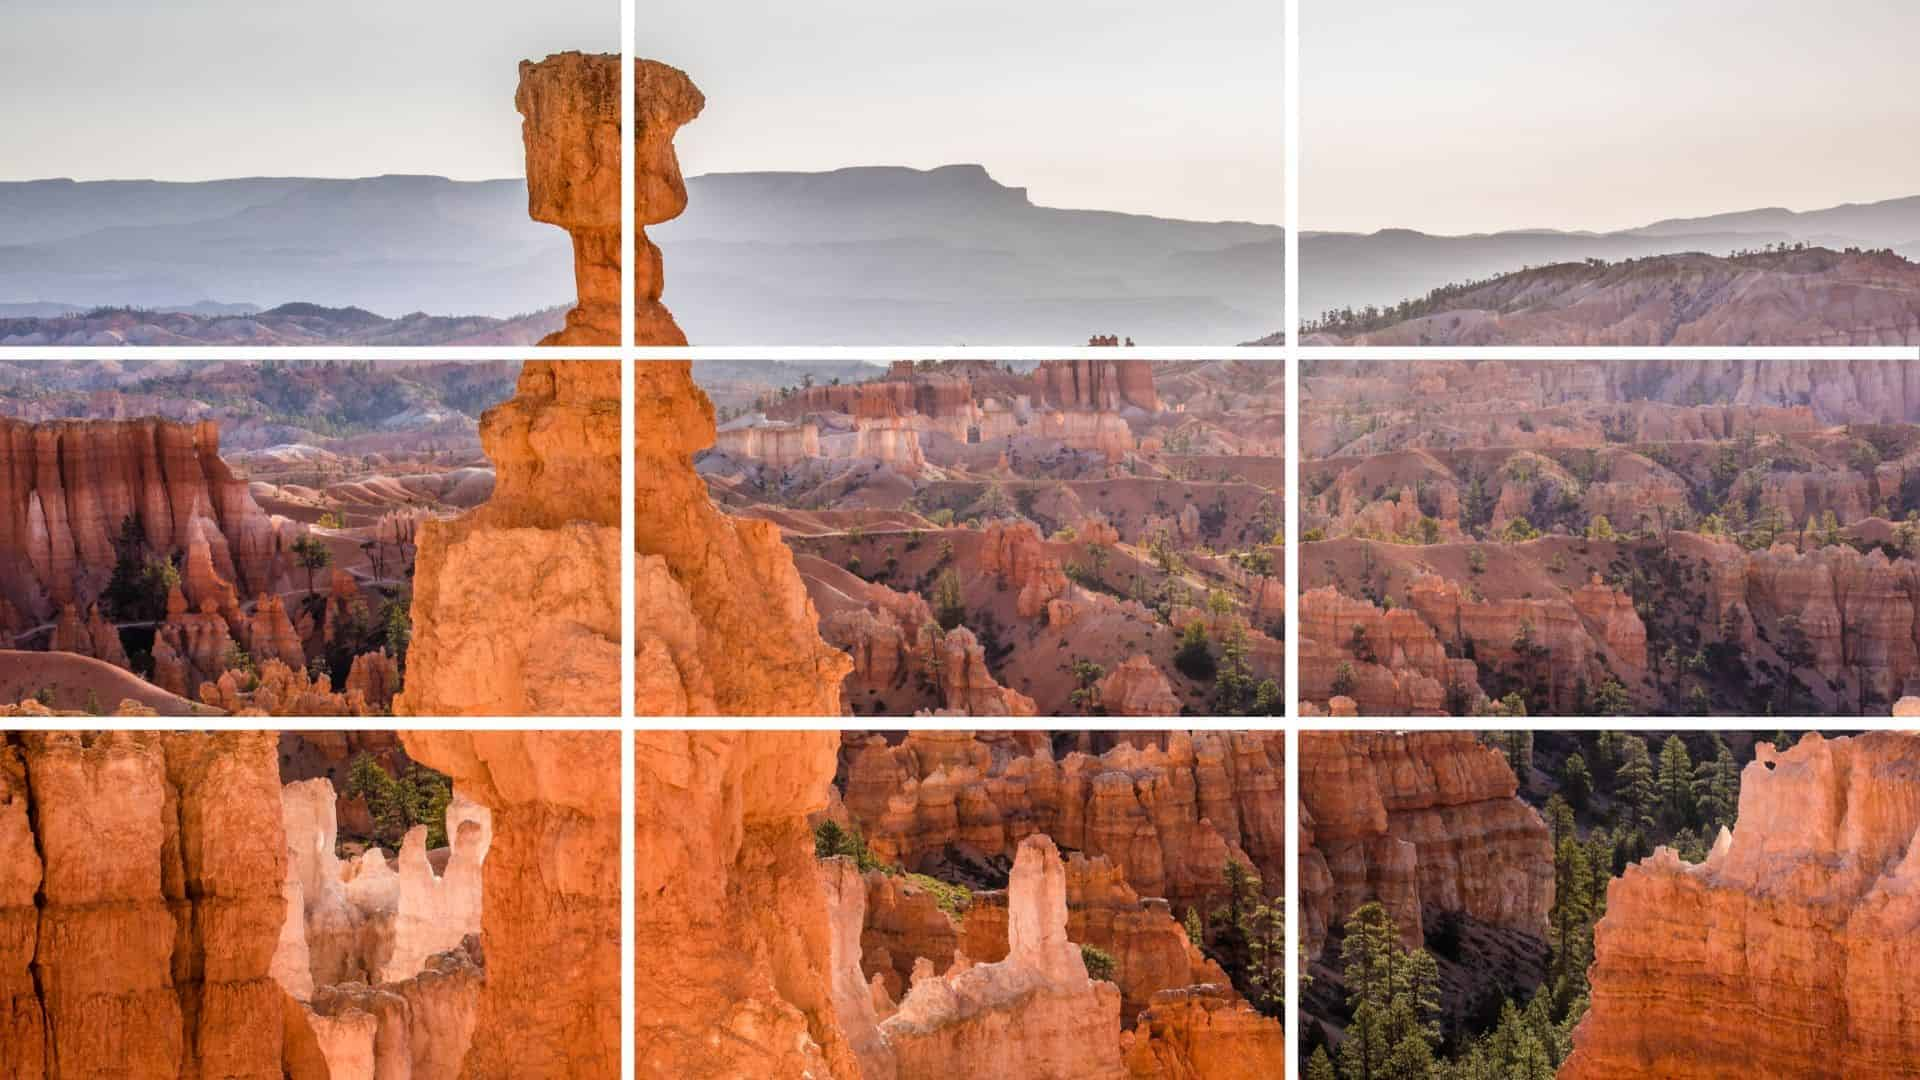 Rule of thirds grid photograping Thor's Hammer at Bryce Canyon.